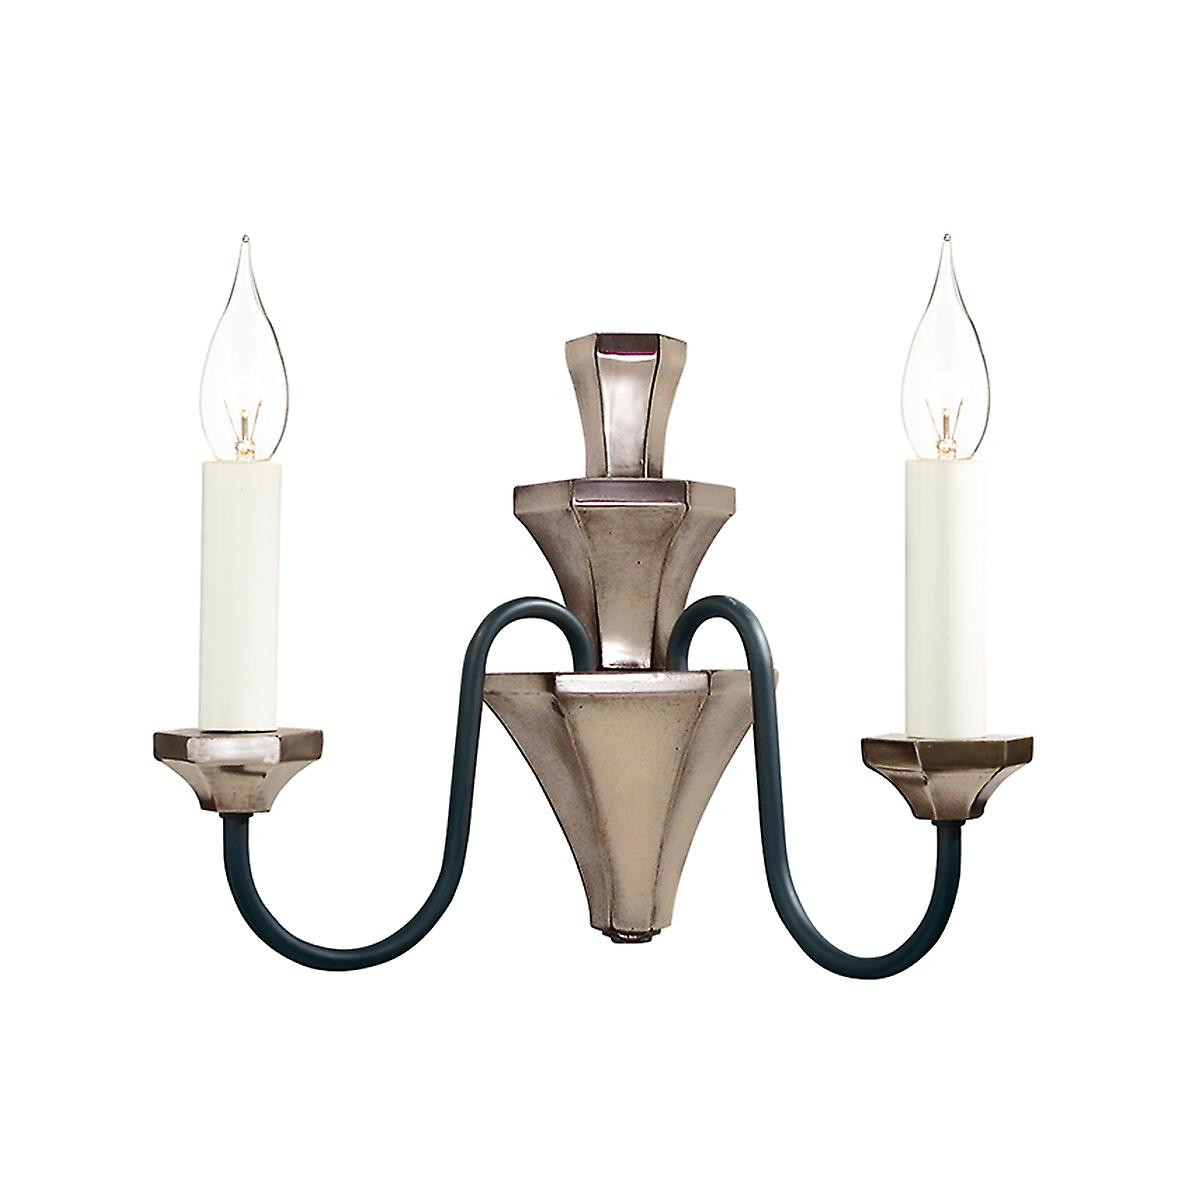 David Hunt OTH0963 Othello Traditional Double Wall Light In Bronze